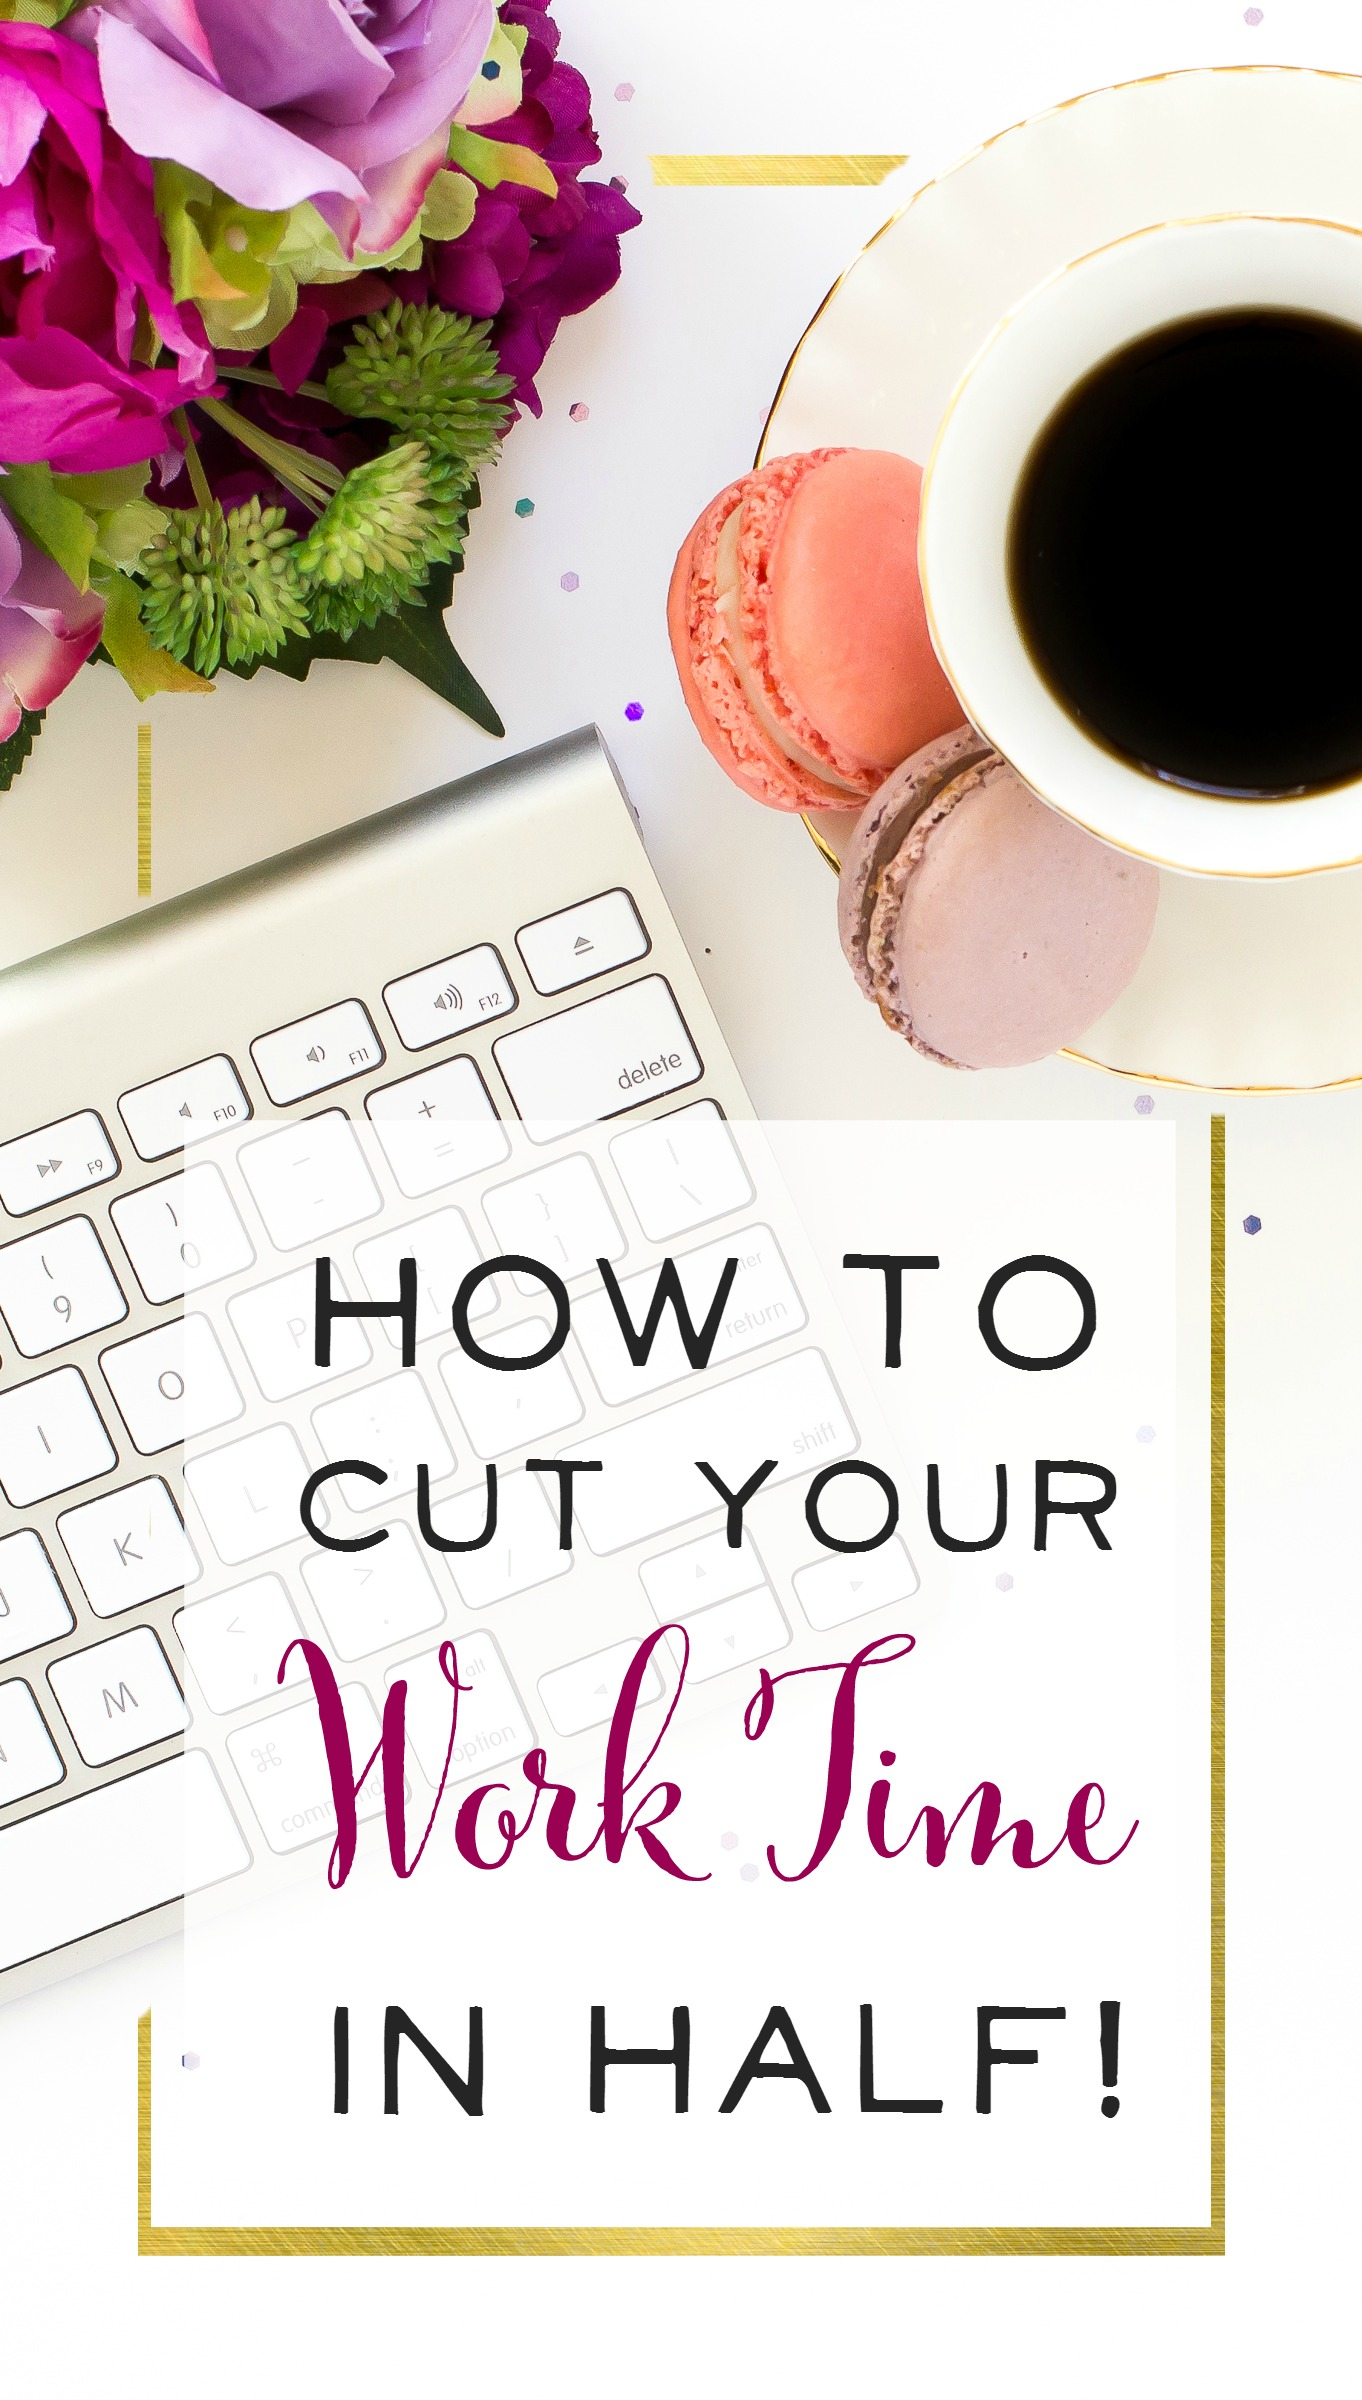 LOVE this post! Finally some realistic time management advice, and I can see how if I practiced this for a month, I could drastically cut down on my work time. | How to Cut your Work Time in Half! Realistic Productivity Secrets for Mamapreneurs